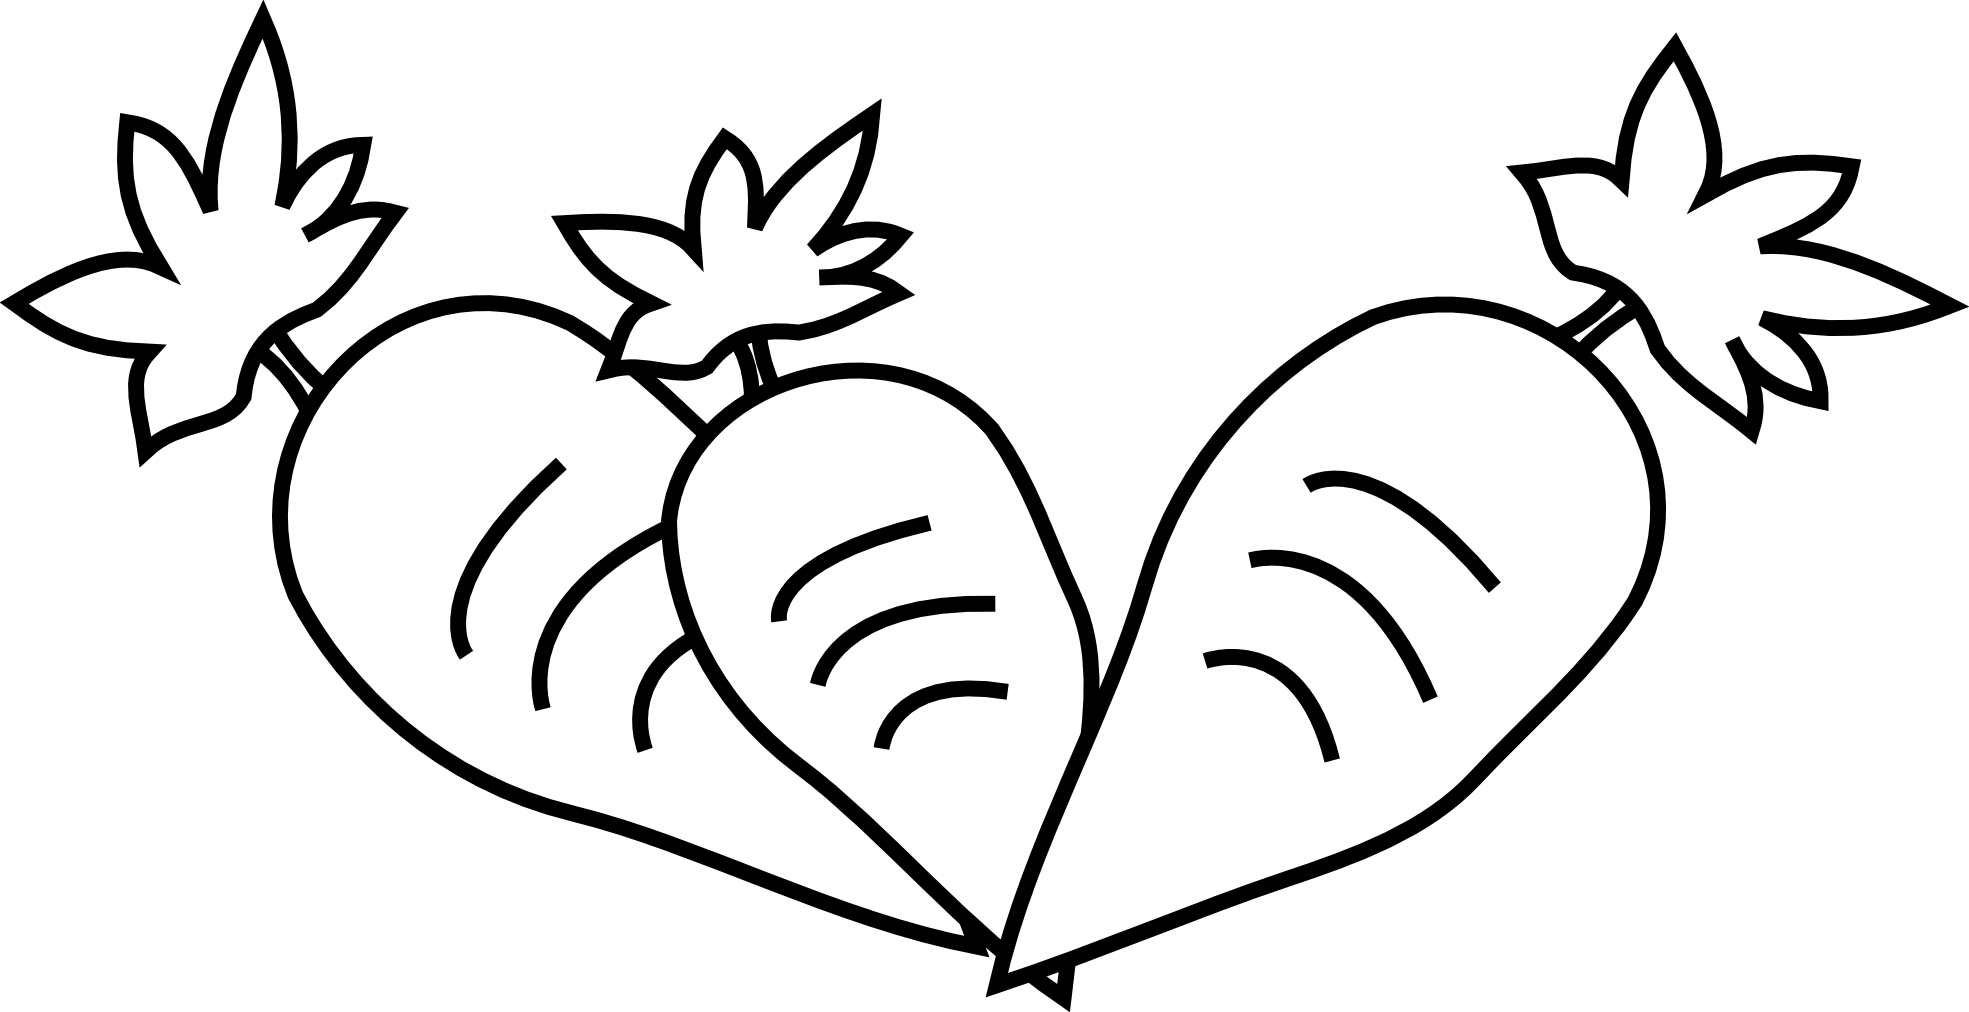 Carrot Clipart Black And White.